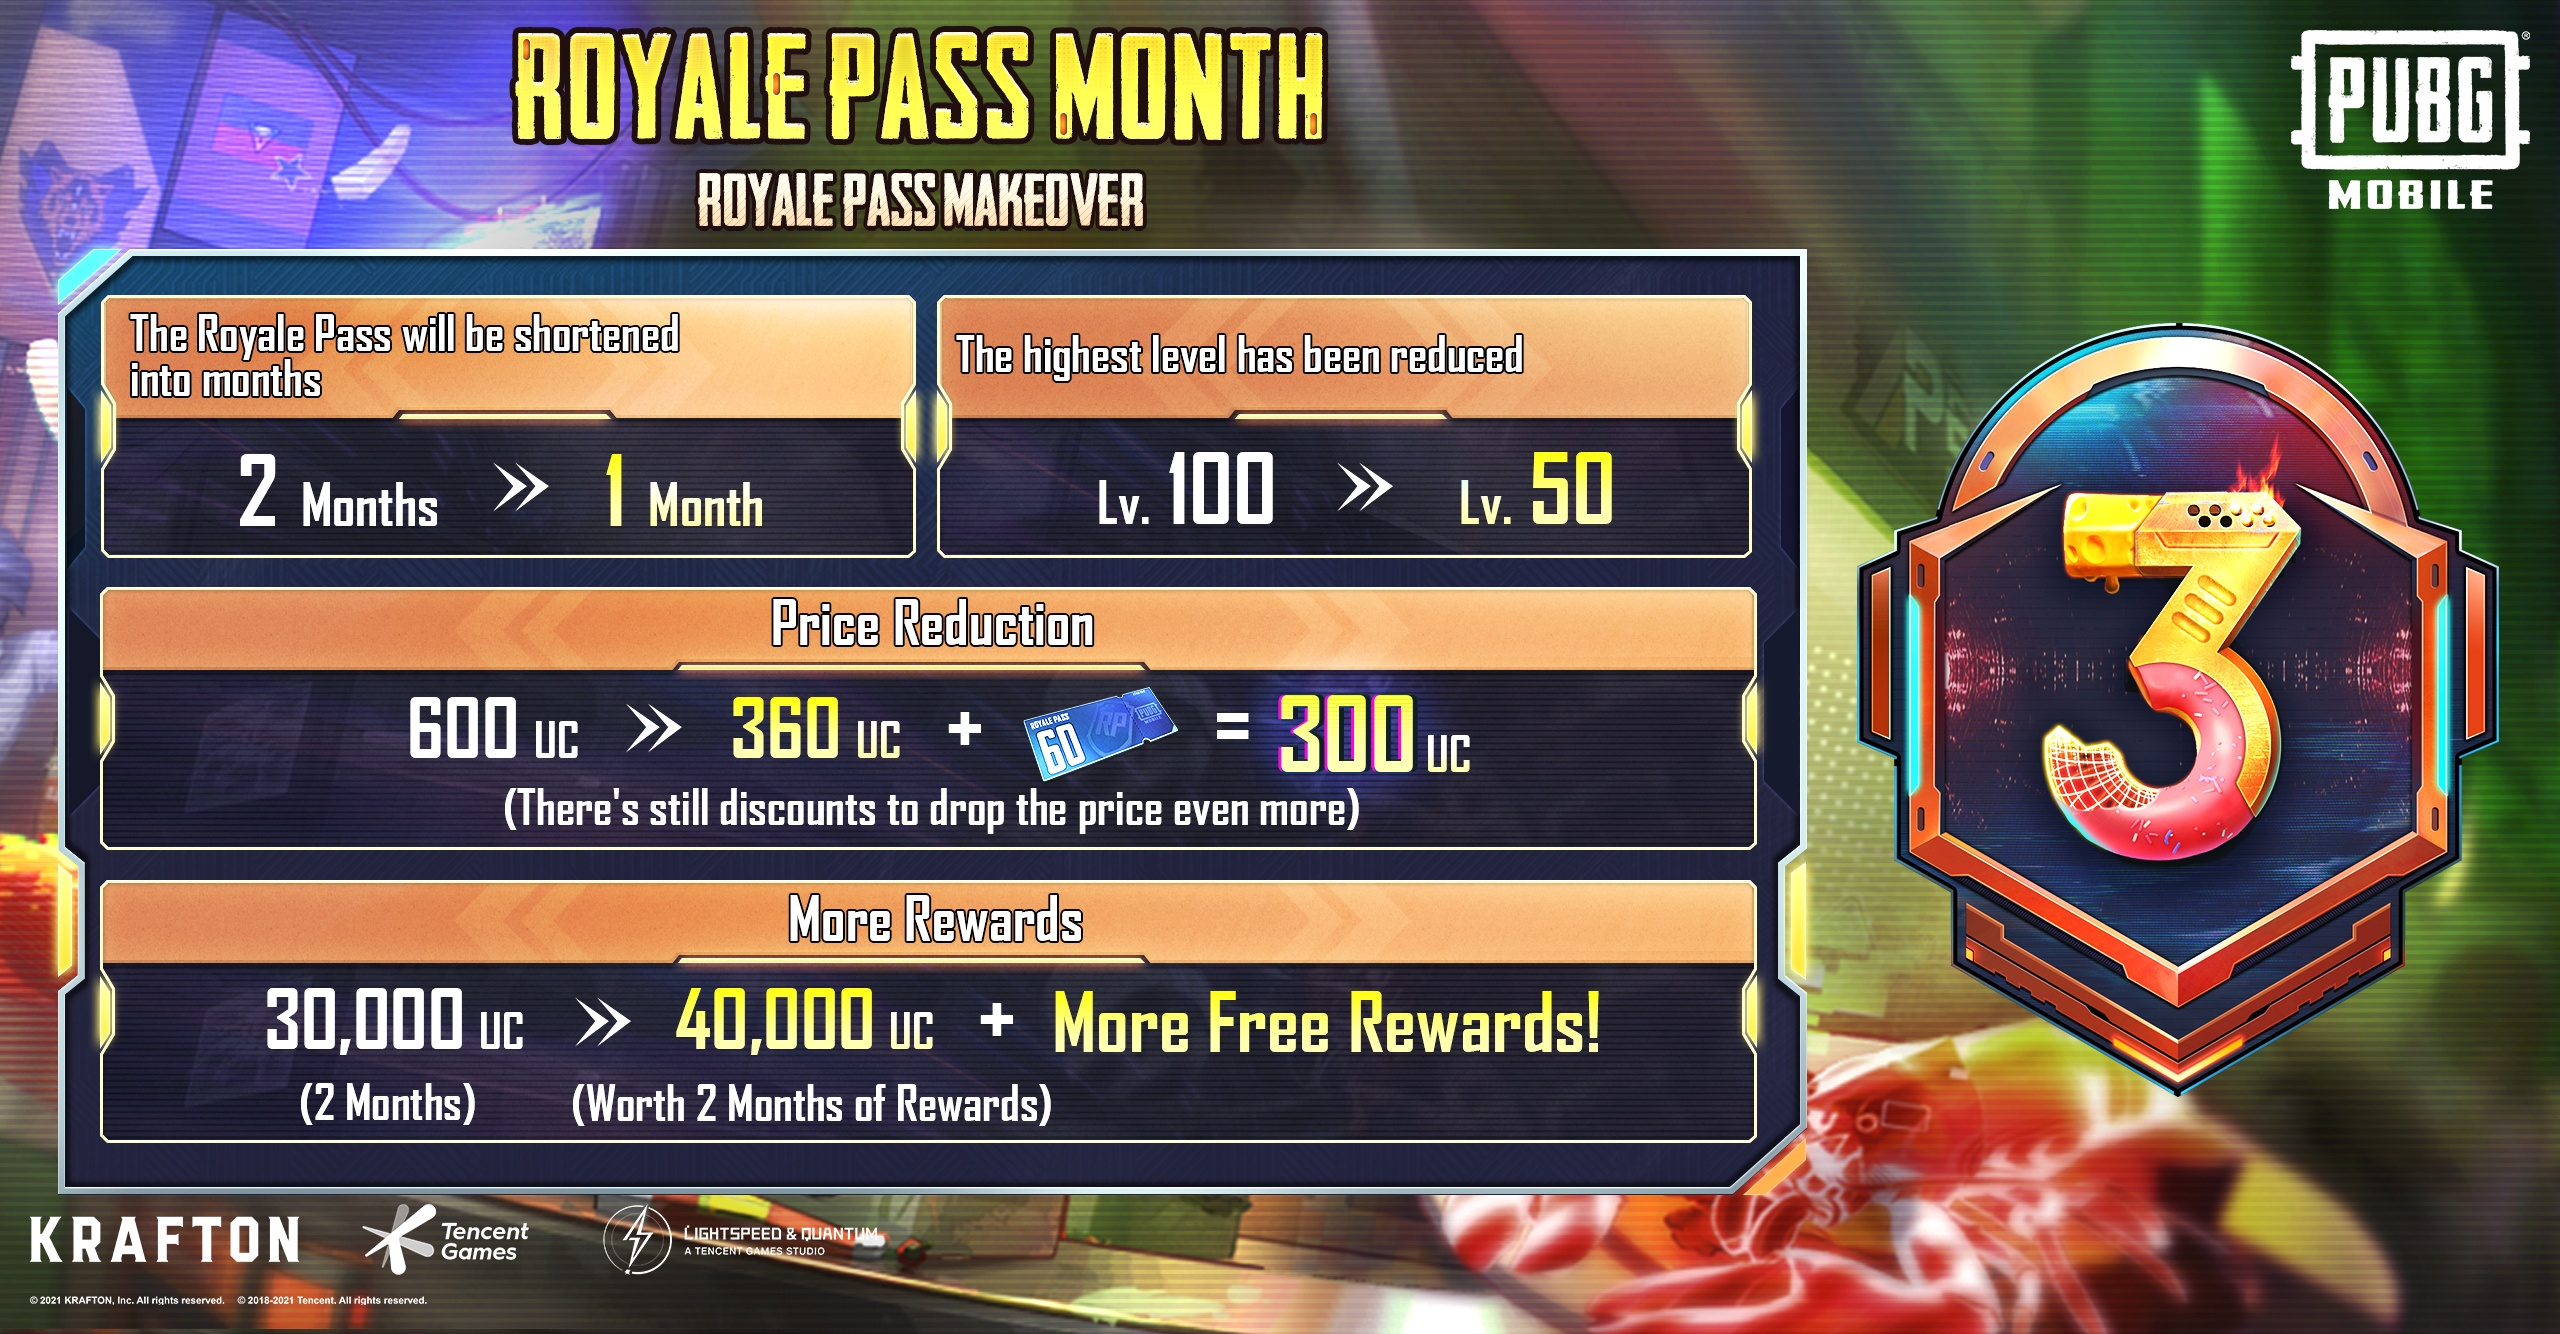 PUBG Mobile 1.6 update to come with Royale Pass Month 3